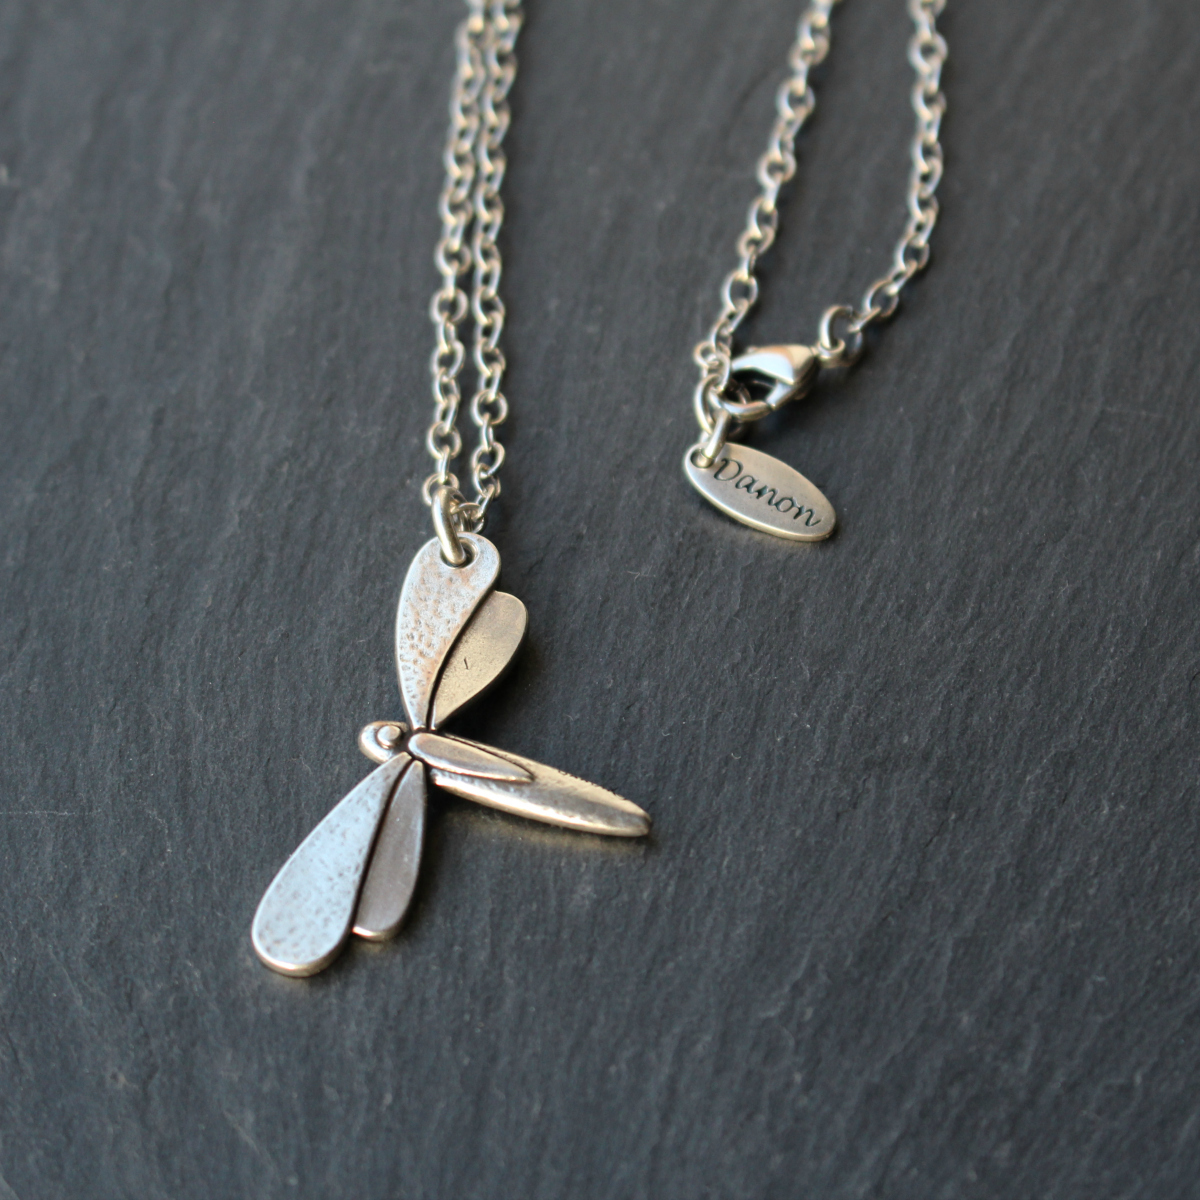 Danon Jewellery Dragonfly Long Chain Necklace